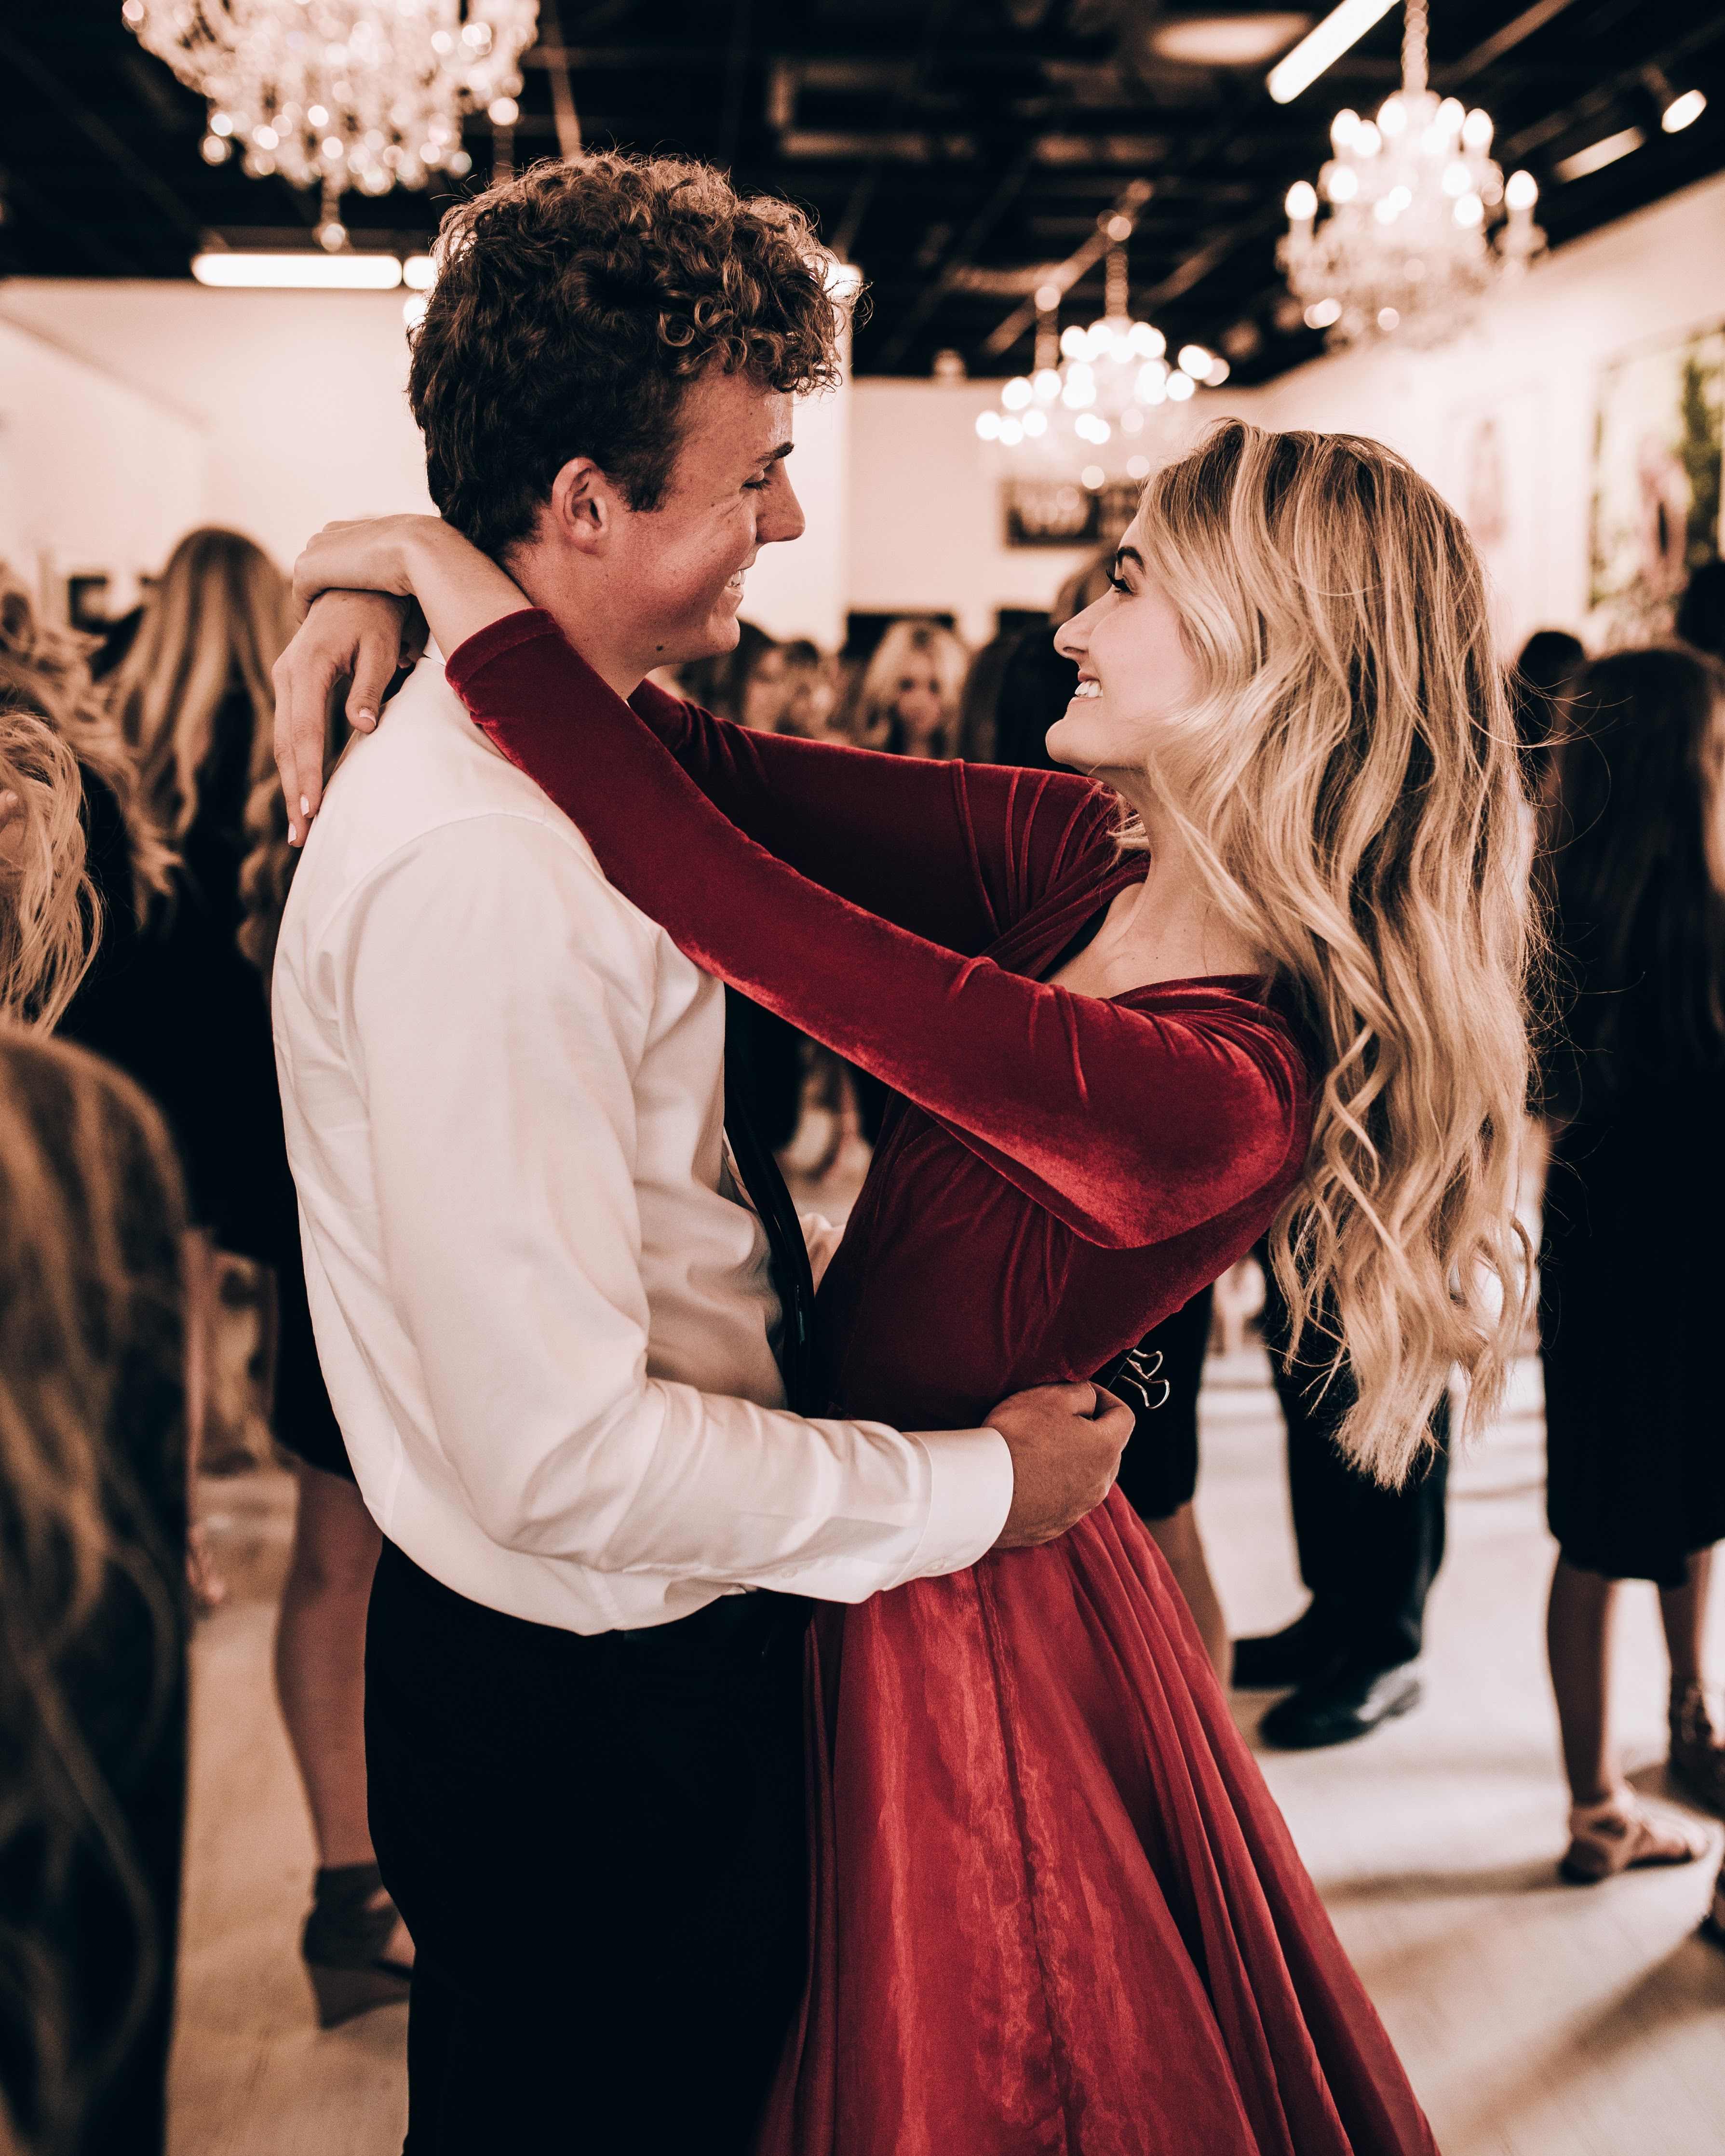 Ypsilon Dresses Couple Goals Cutest Couple Prom Dance Homecoming